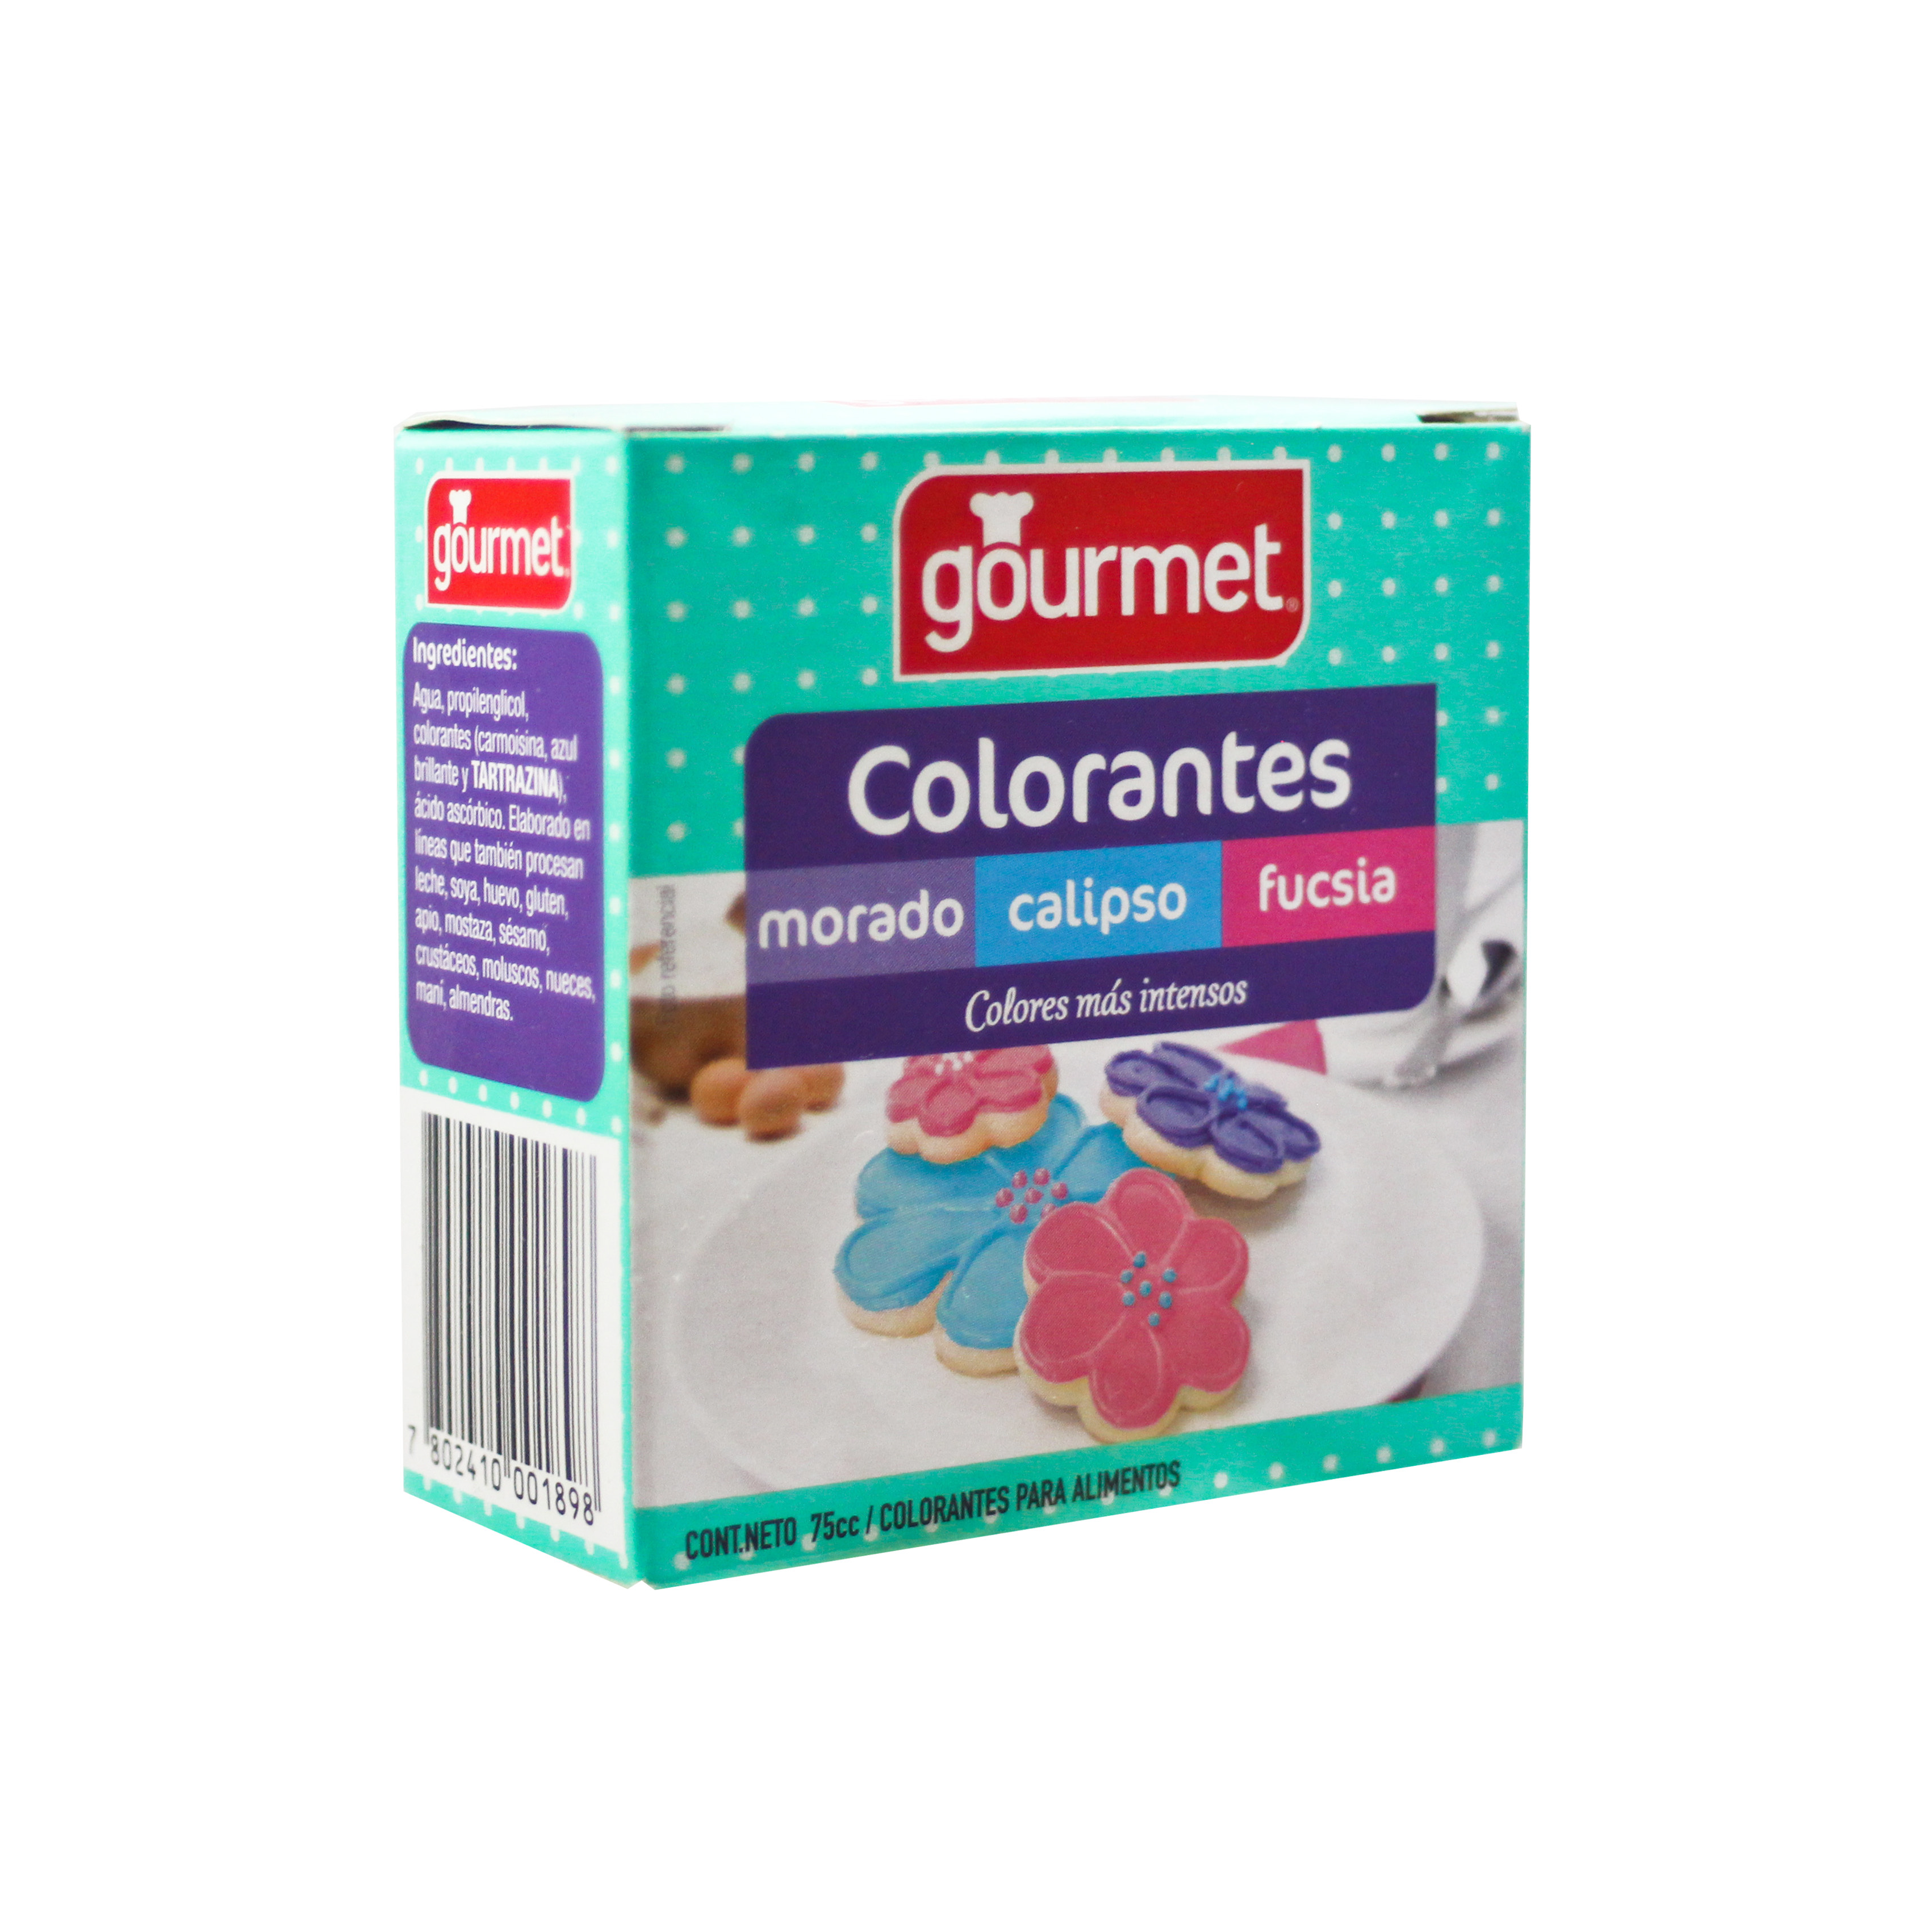 Colorantes Morado – Calipso – Fucsia